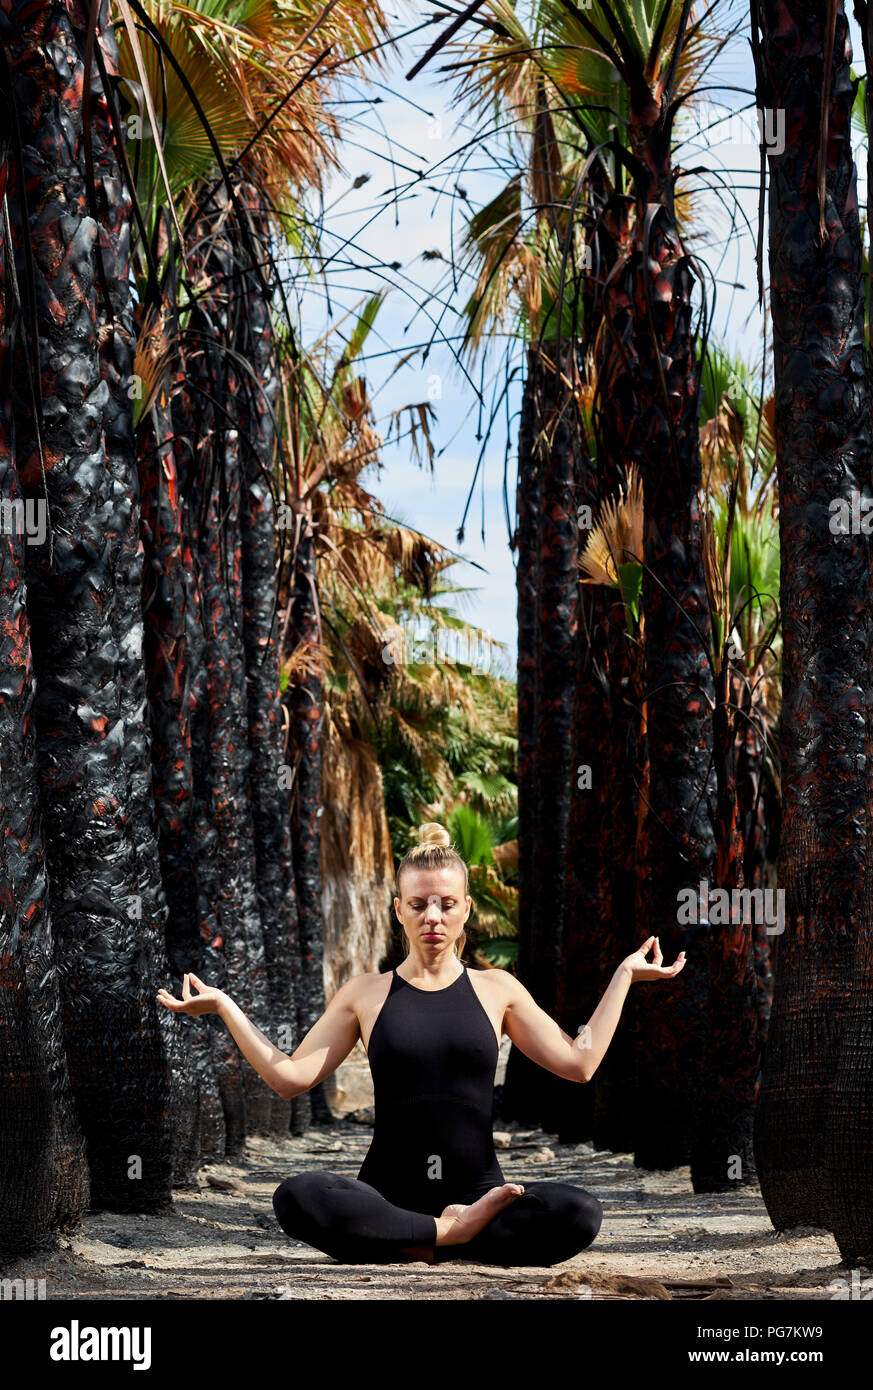 Young woman in black sportswear sitting in lotus position and meditating outdoors. Woman in early gestation. Pre natal exercising, healthy lifestyle.  - Stock Image